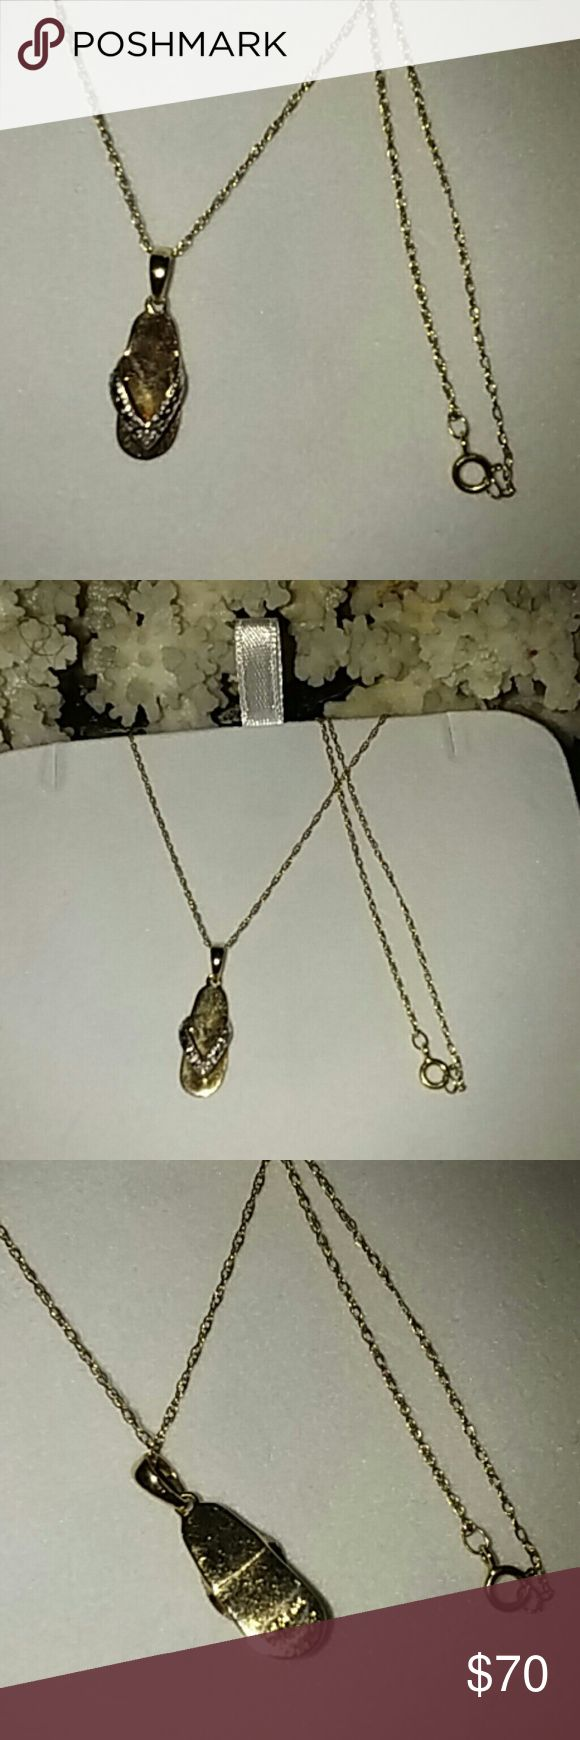 "10k gold chain and pendant 10k gold chain and pendant , have little diamond ,18"" long Stamped >AFJC 10K no brand Jewelry Necklaces"